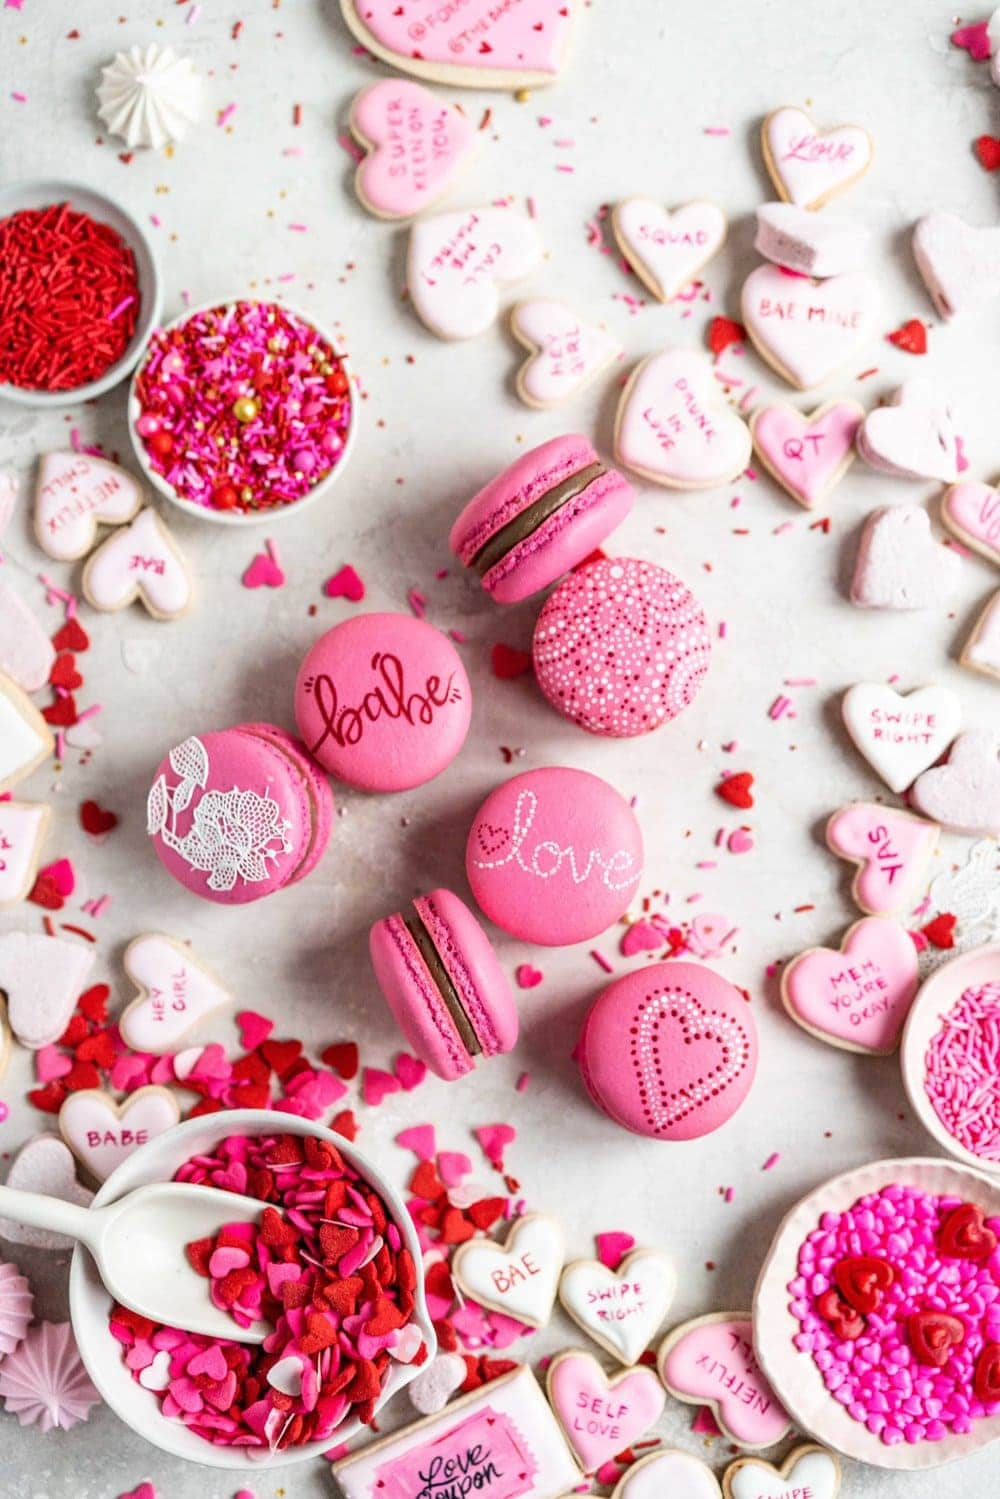 macarons on surface painted with valentine's images